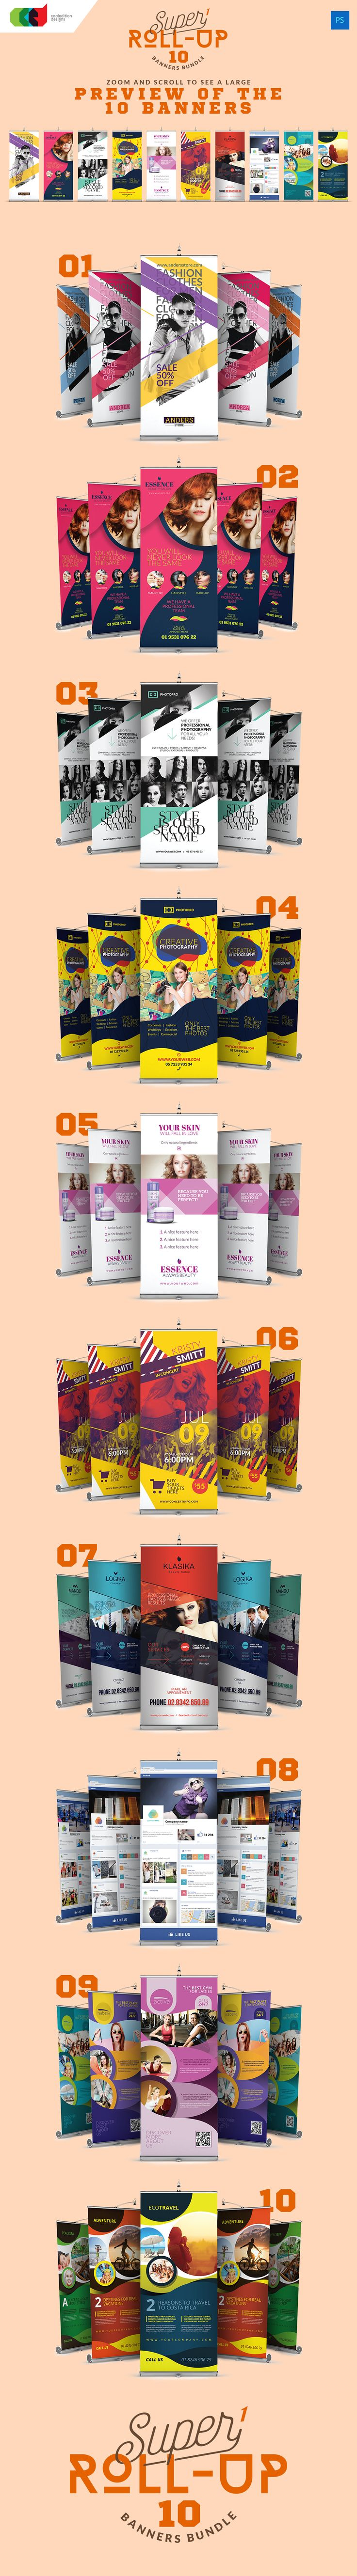 Super 1 - Roll-Up Banners Bundle - $17